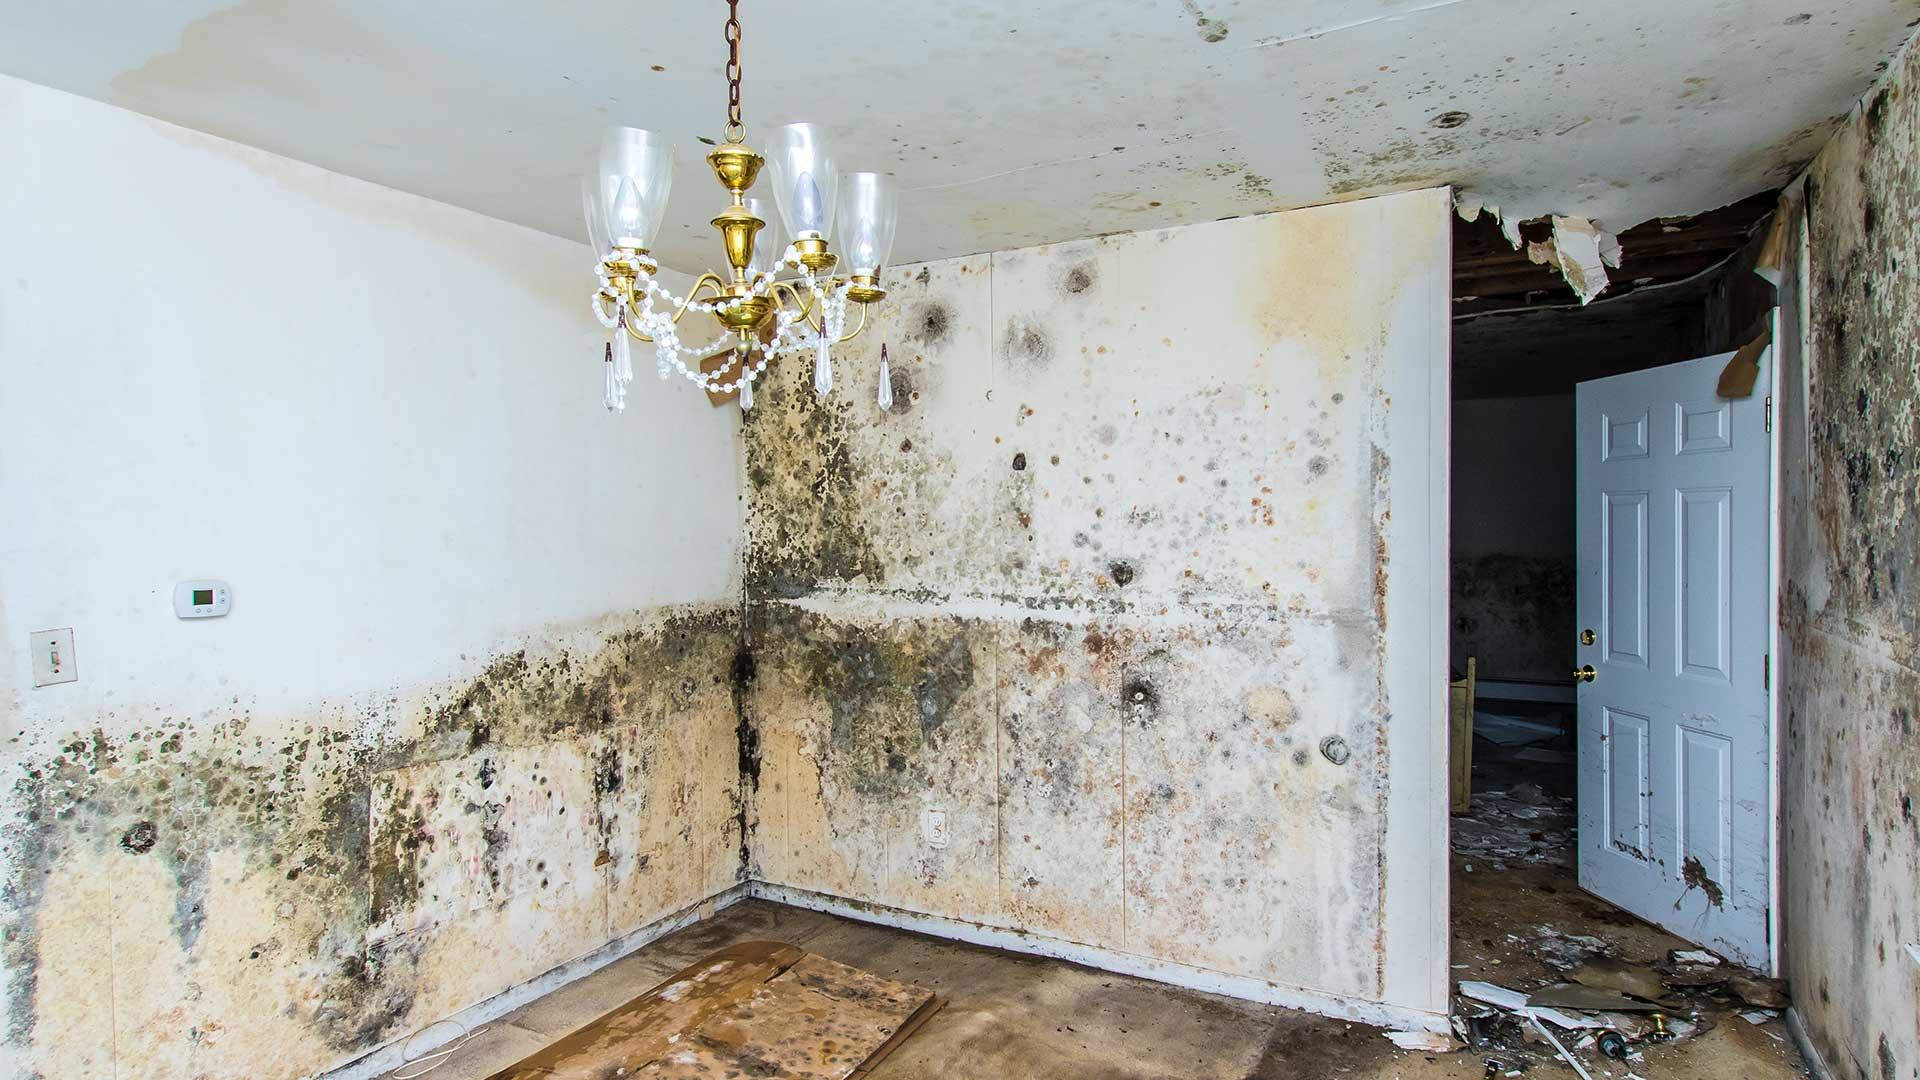 Major mold damage to a home in Brandon, FL.